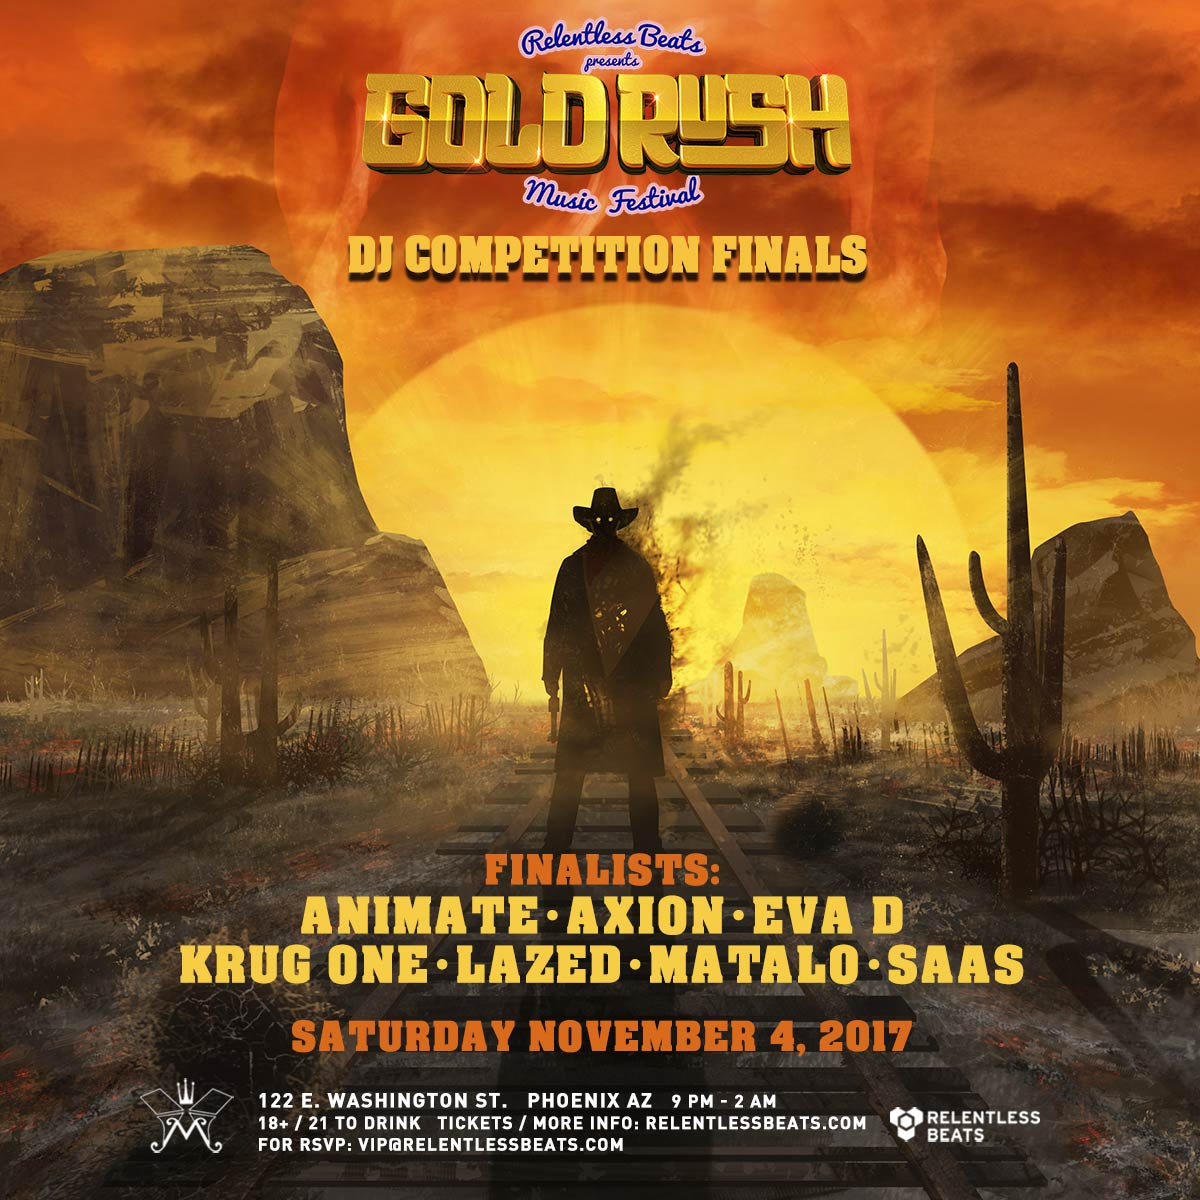 Flyer for Goldrush Music Festival DJ Competiton Finals